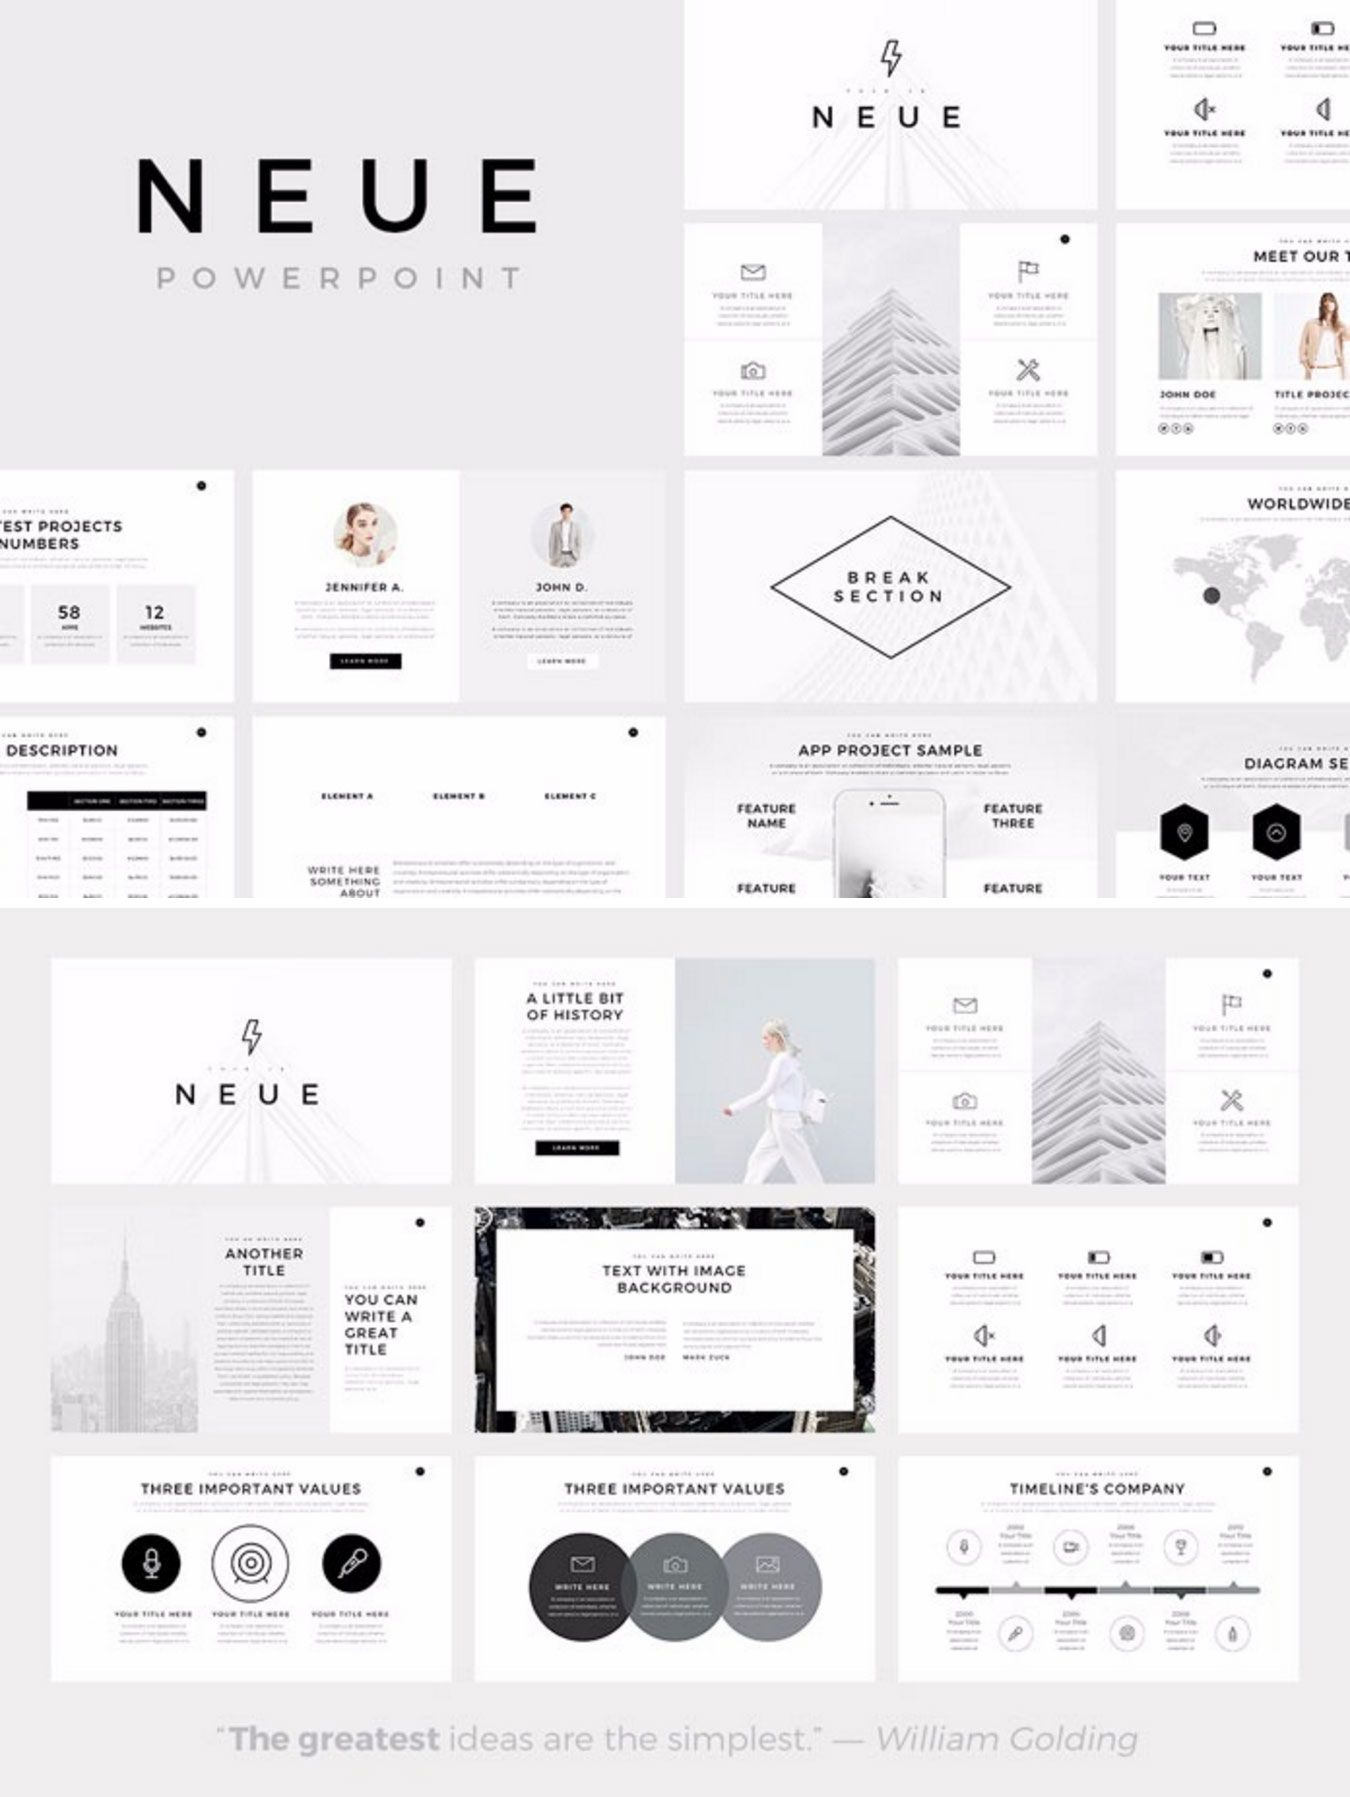 neue – minimalist powerpoint template | ☆~keynotes~☆ | pinterest, Presentation templates